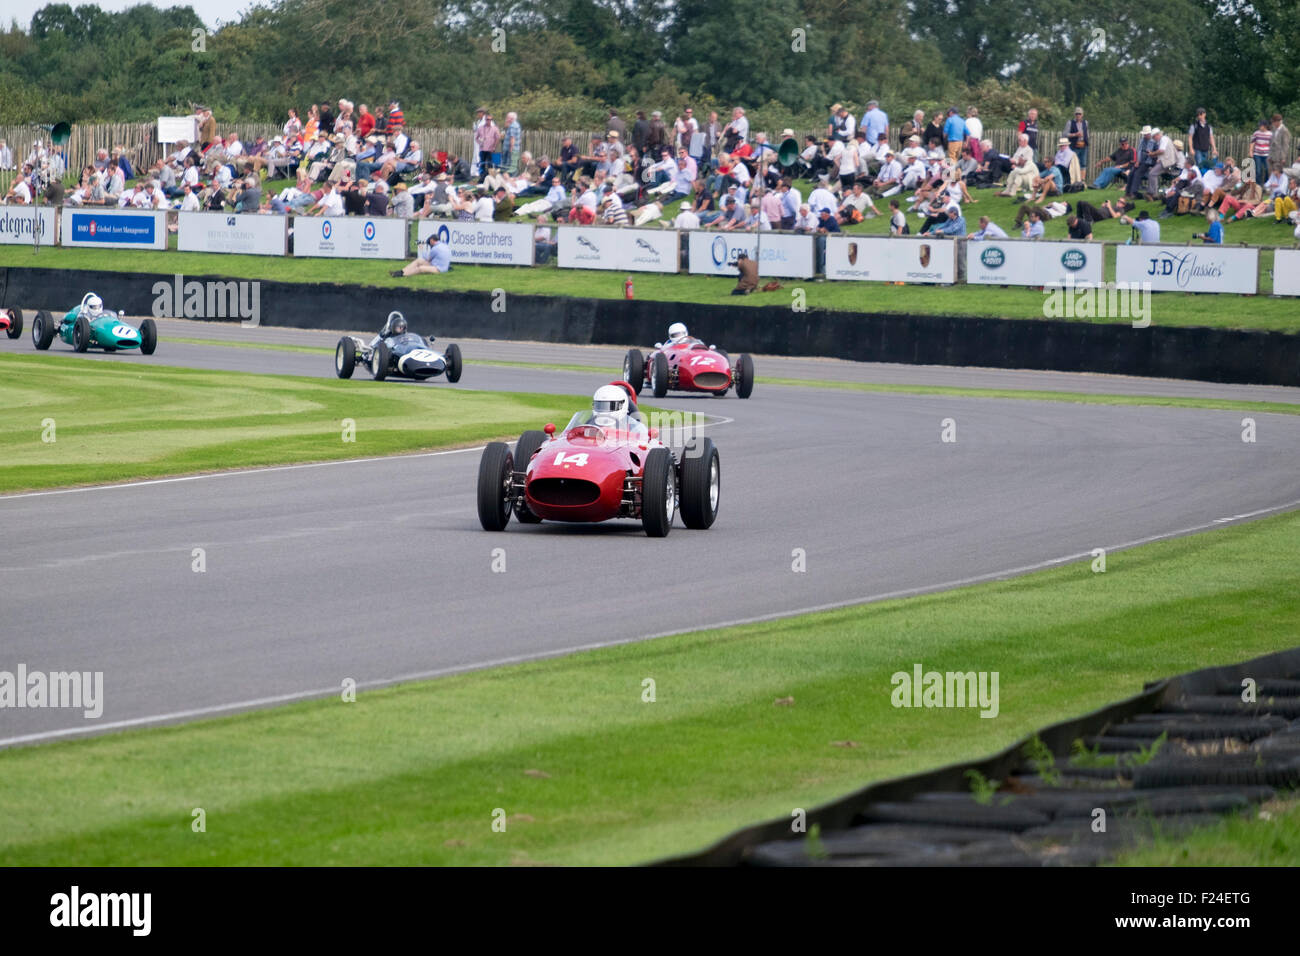 Goodwood, Chichester, West Sussex, UK. 11th September, 2015. Image showing Motor racing action during a practice - Stock Image